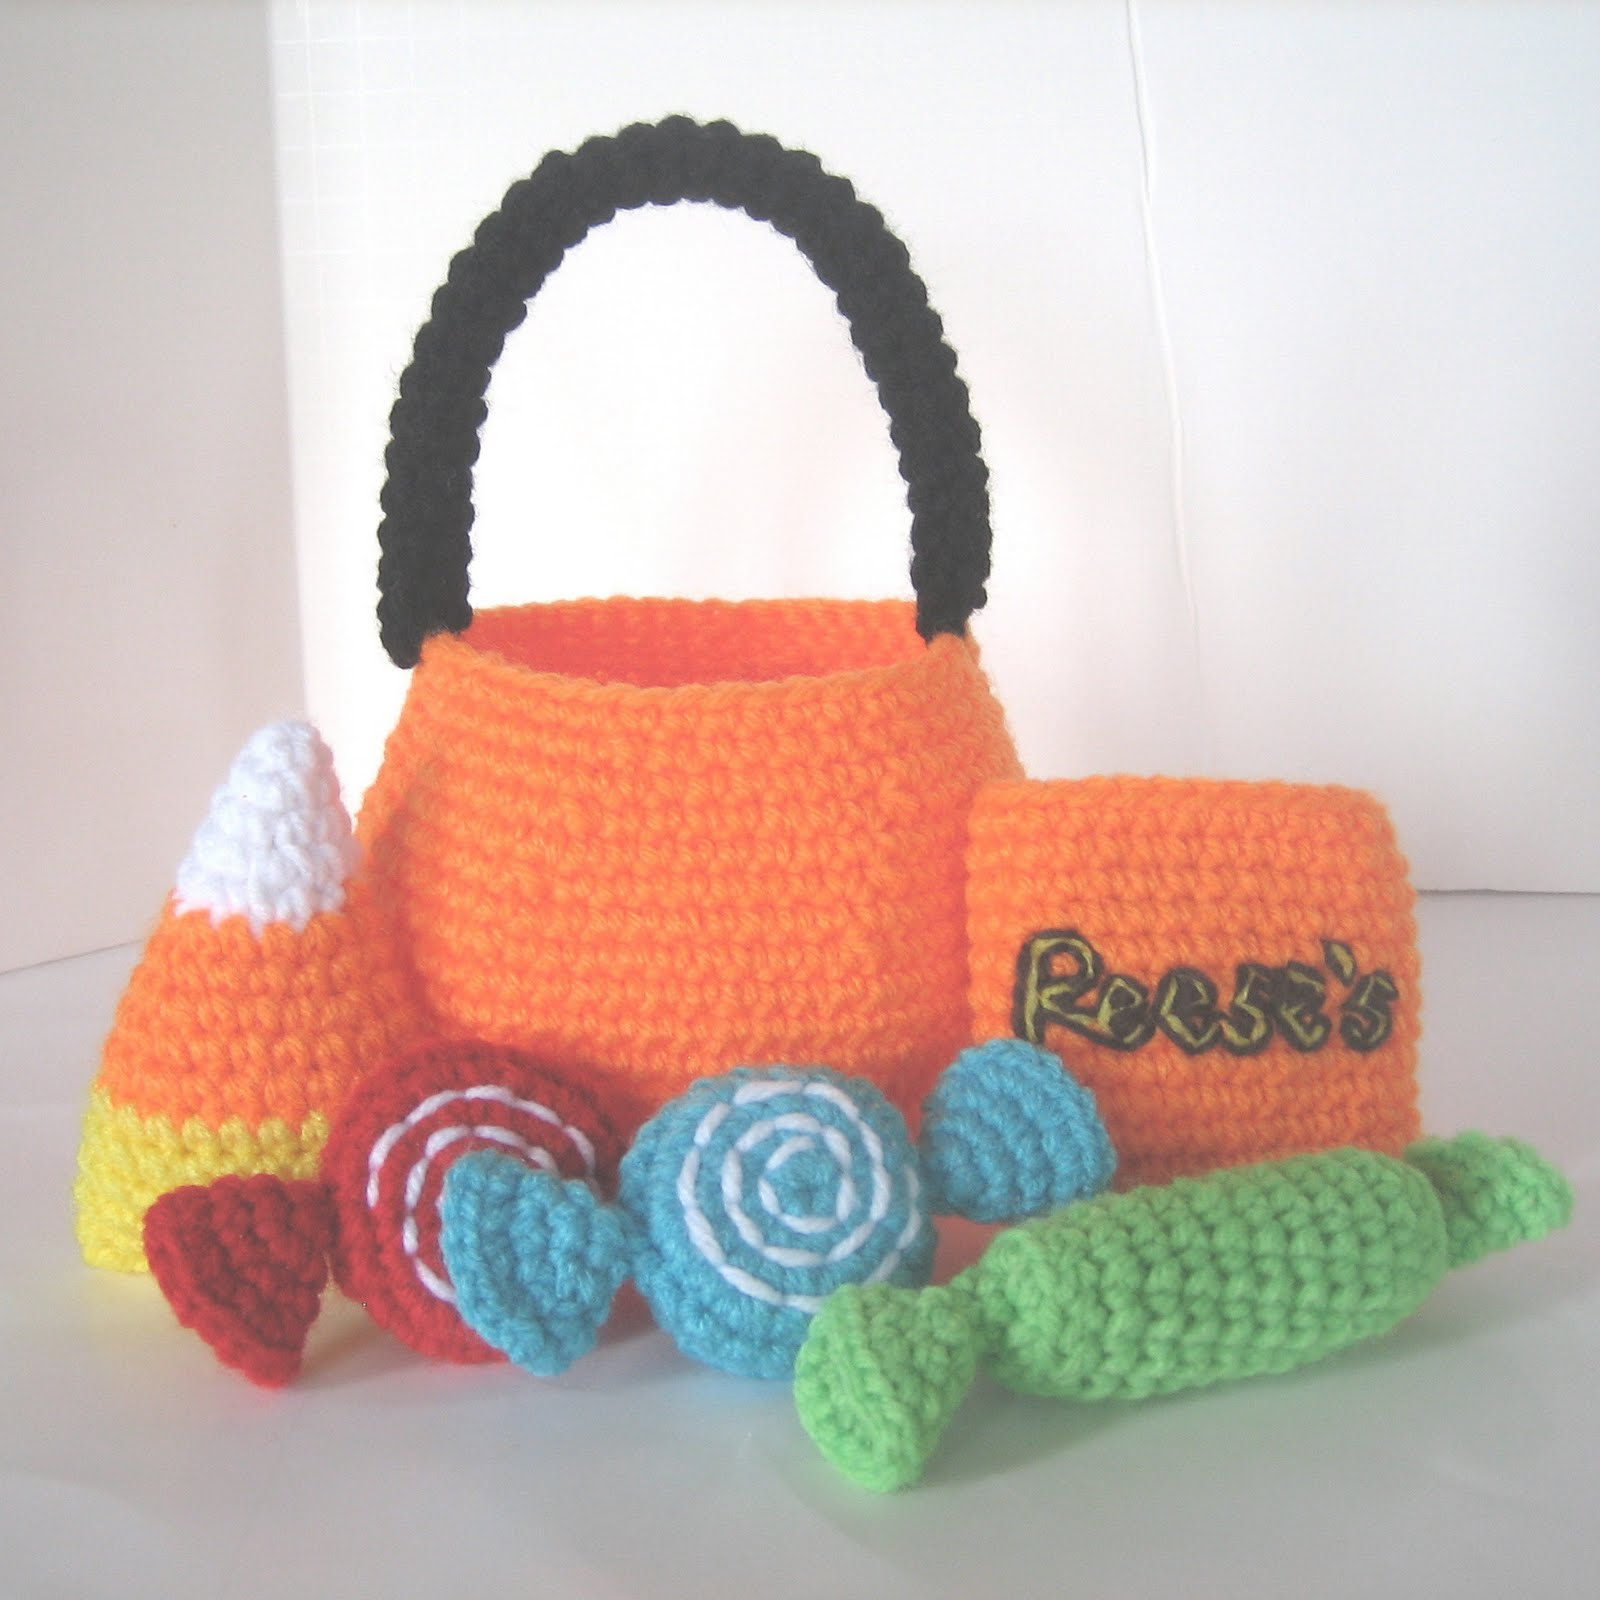 CROCHET N PLAY DESIGNS: New Crochet Pattern: Halloween Treat Bag